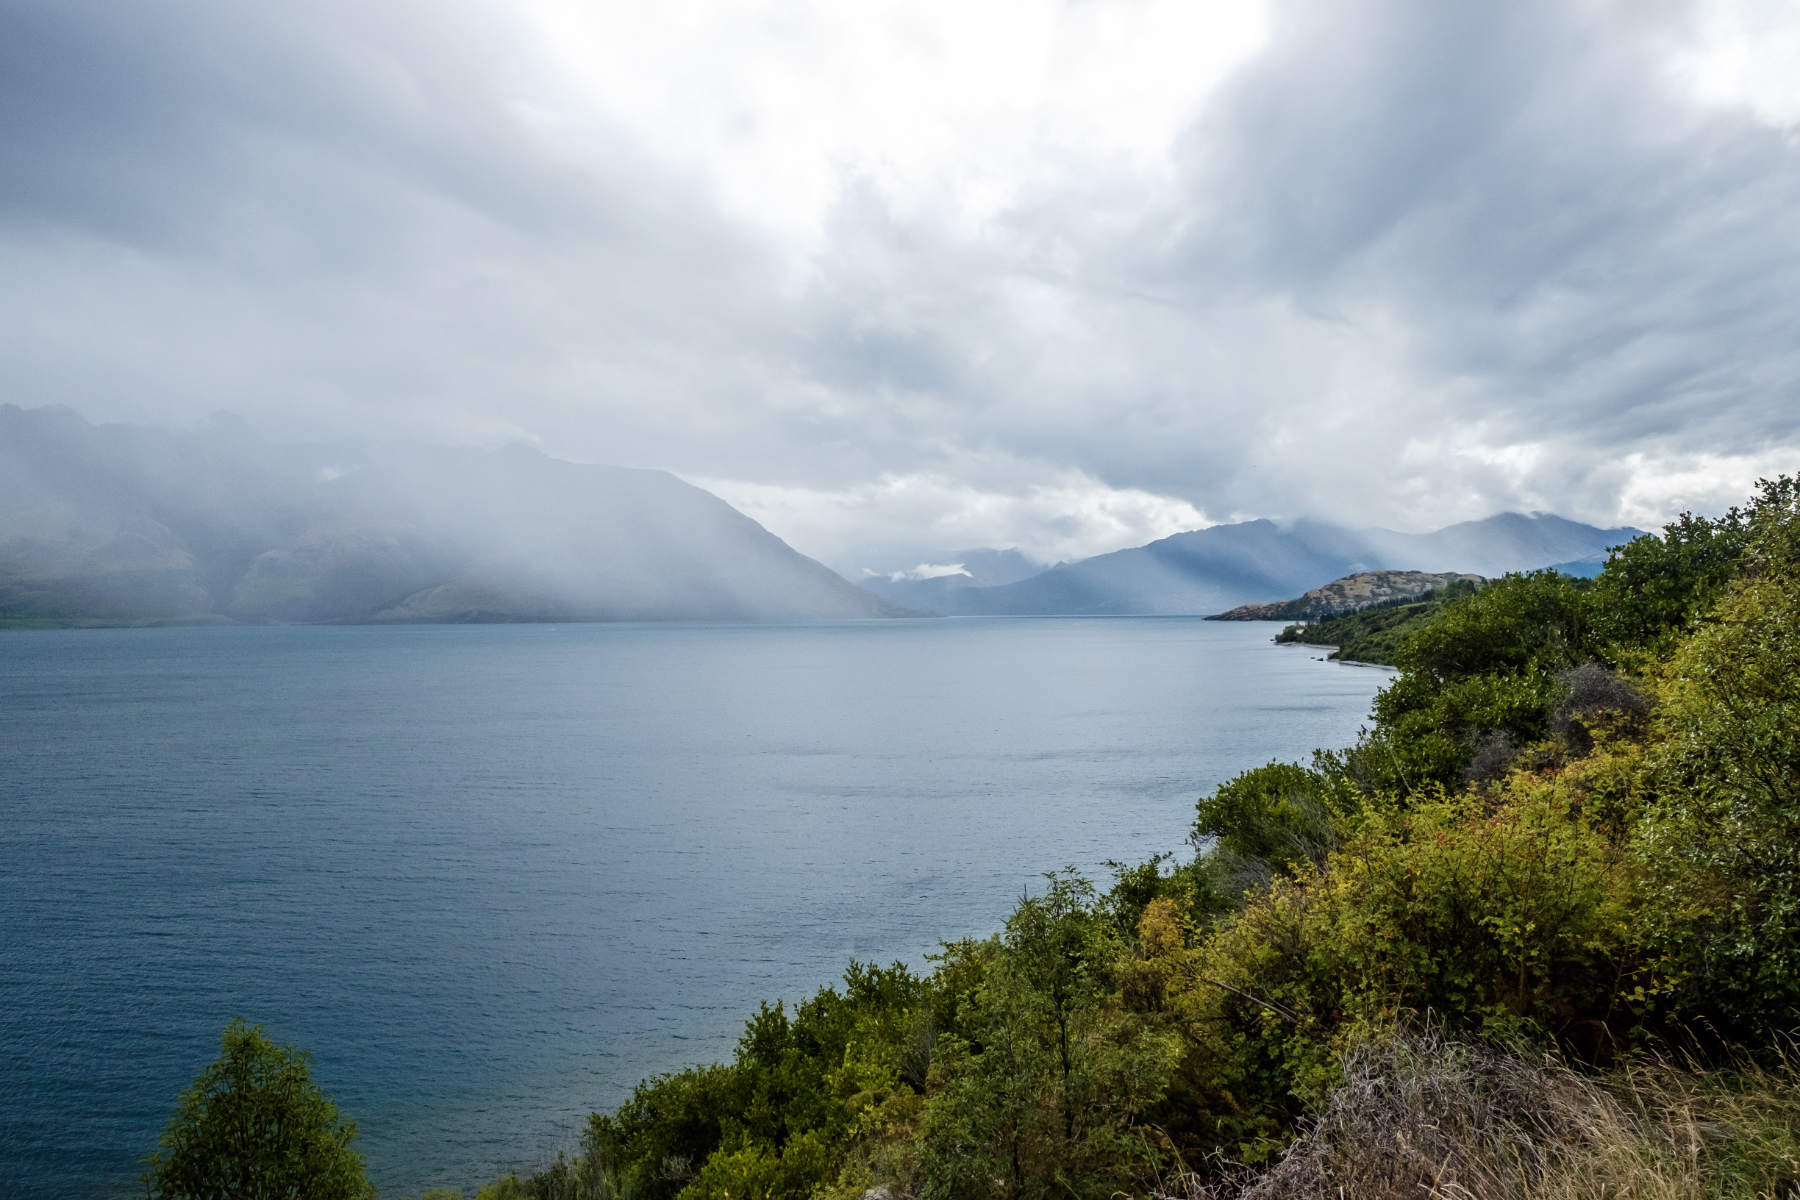 Clouds and rain from afar glenorchy New Zealand